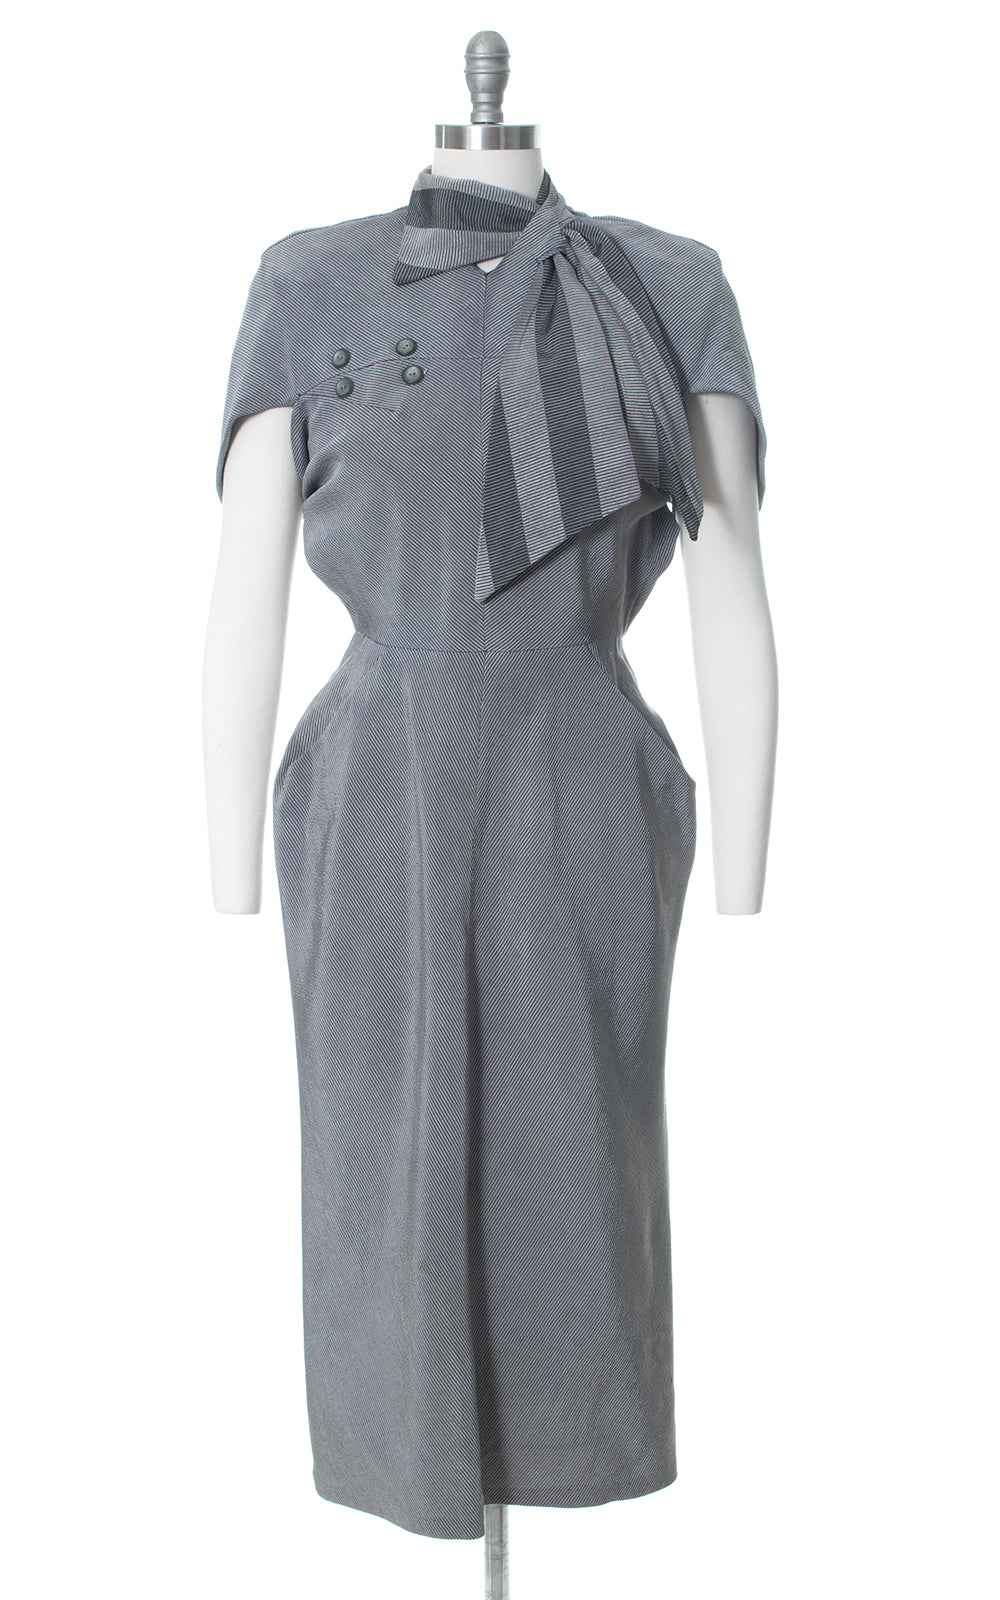 1940s Grey Striped Architectural Blade Runner Secretary Dress